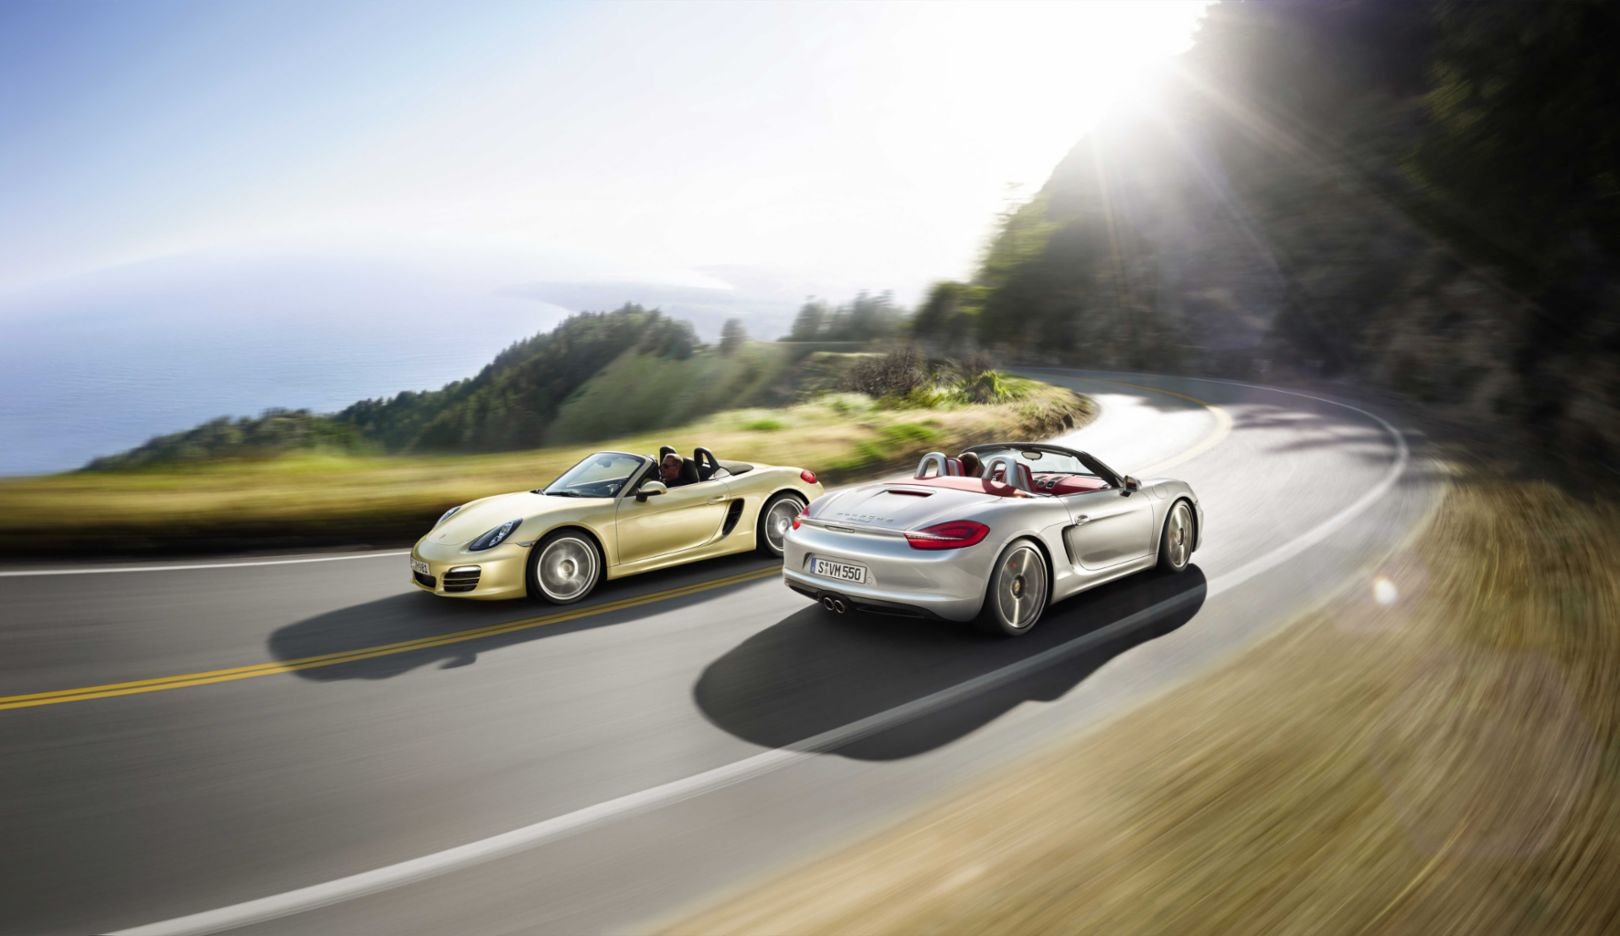 981 generation: model years 2011–2016. The transition to the third generation brings extensive changes. Not only has the lightweight body of the Boxster been completely overhauled, but the chassis as well. Despite increased driving performance, the new Boxster is up to 15 per cent more economical.